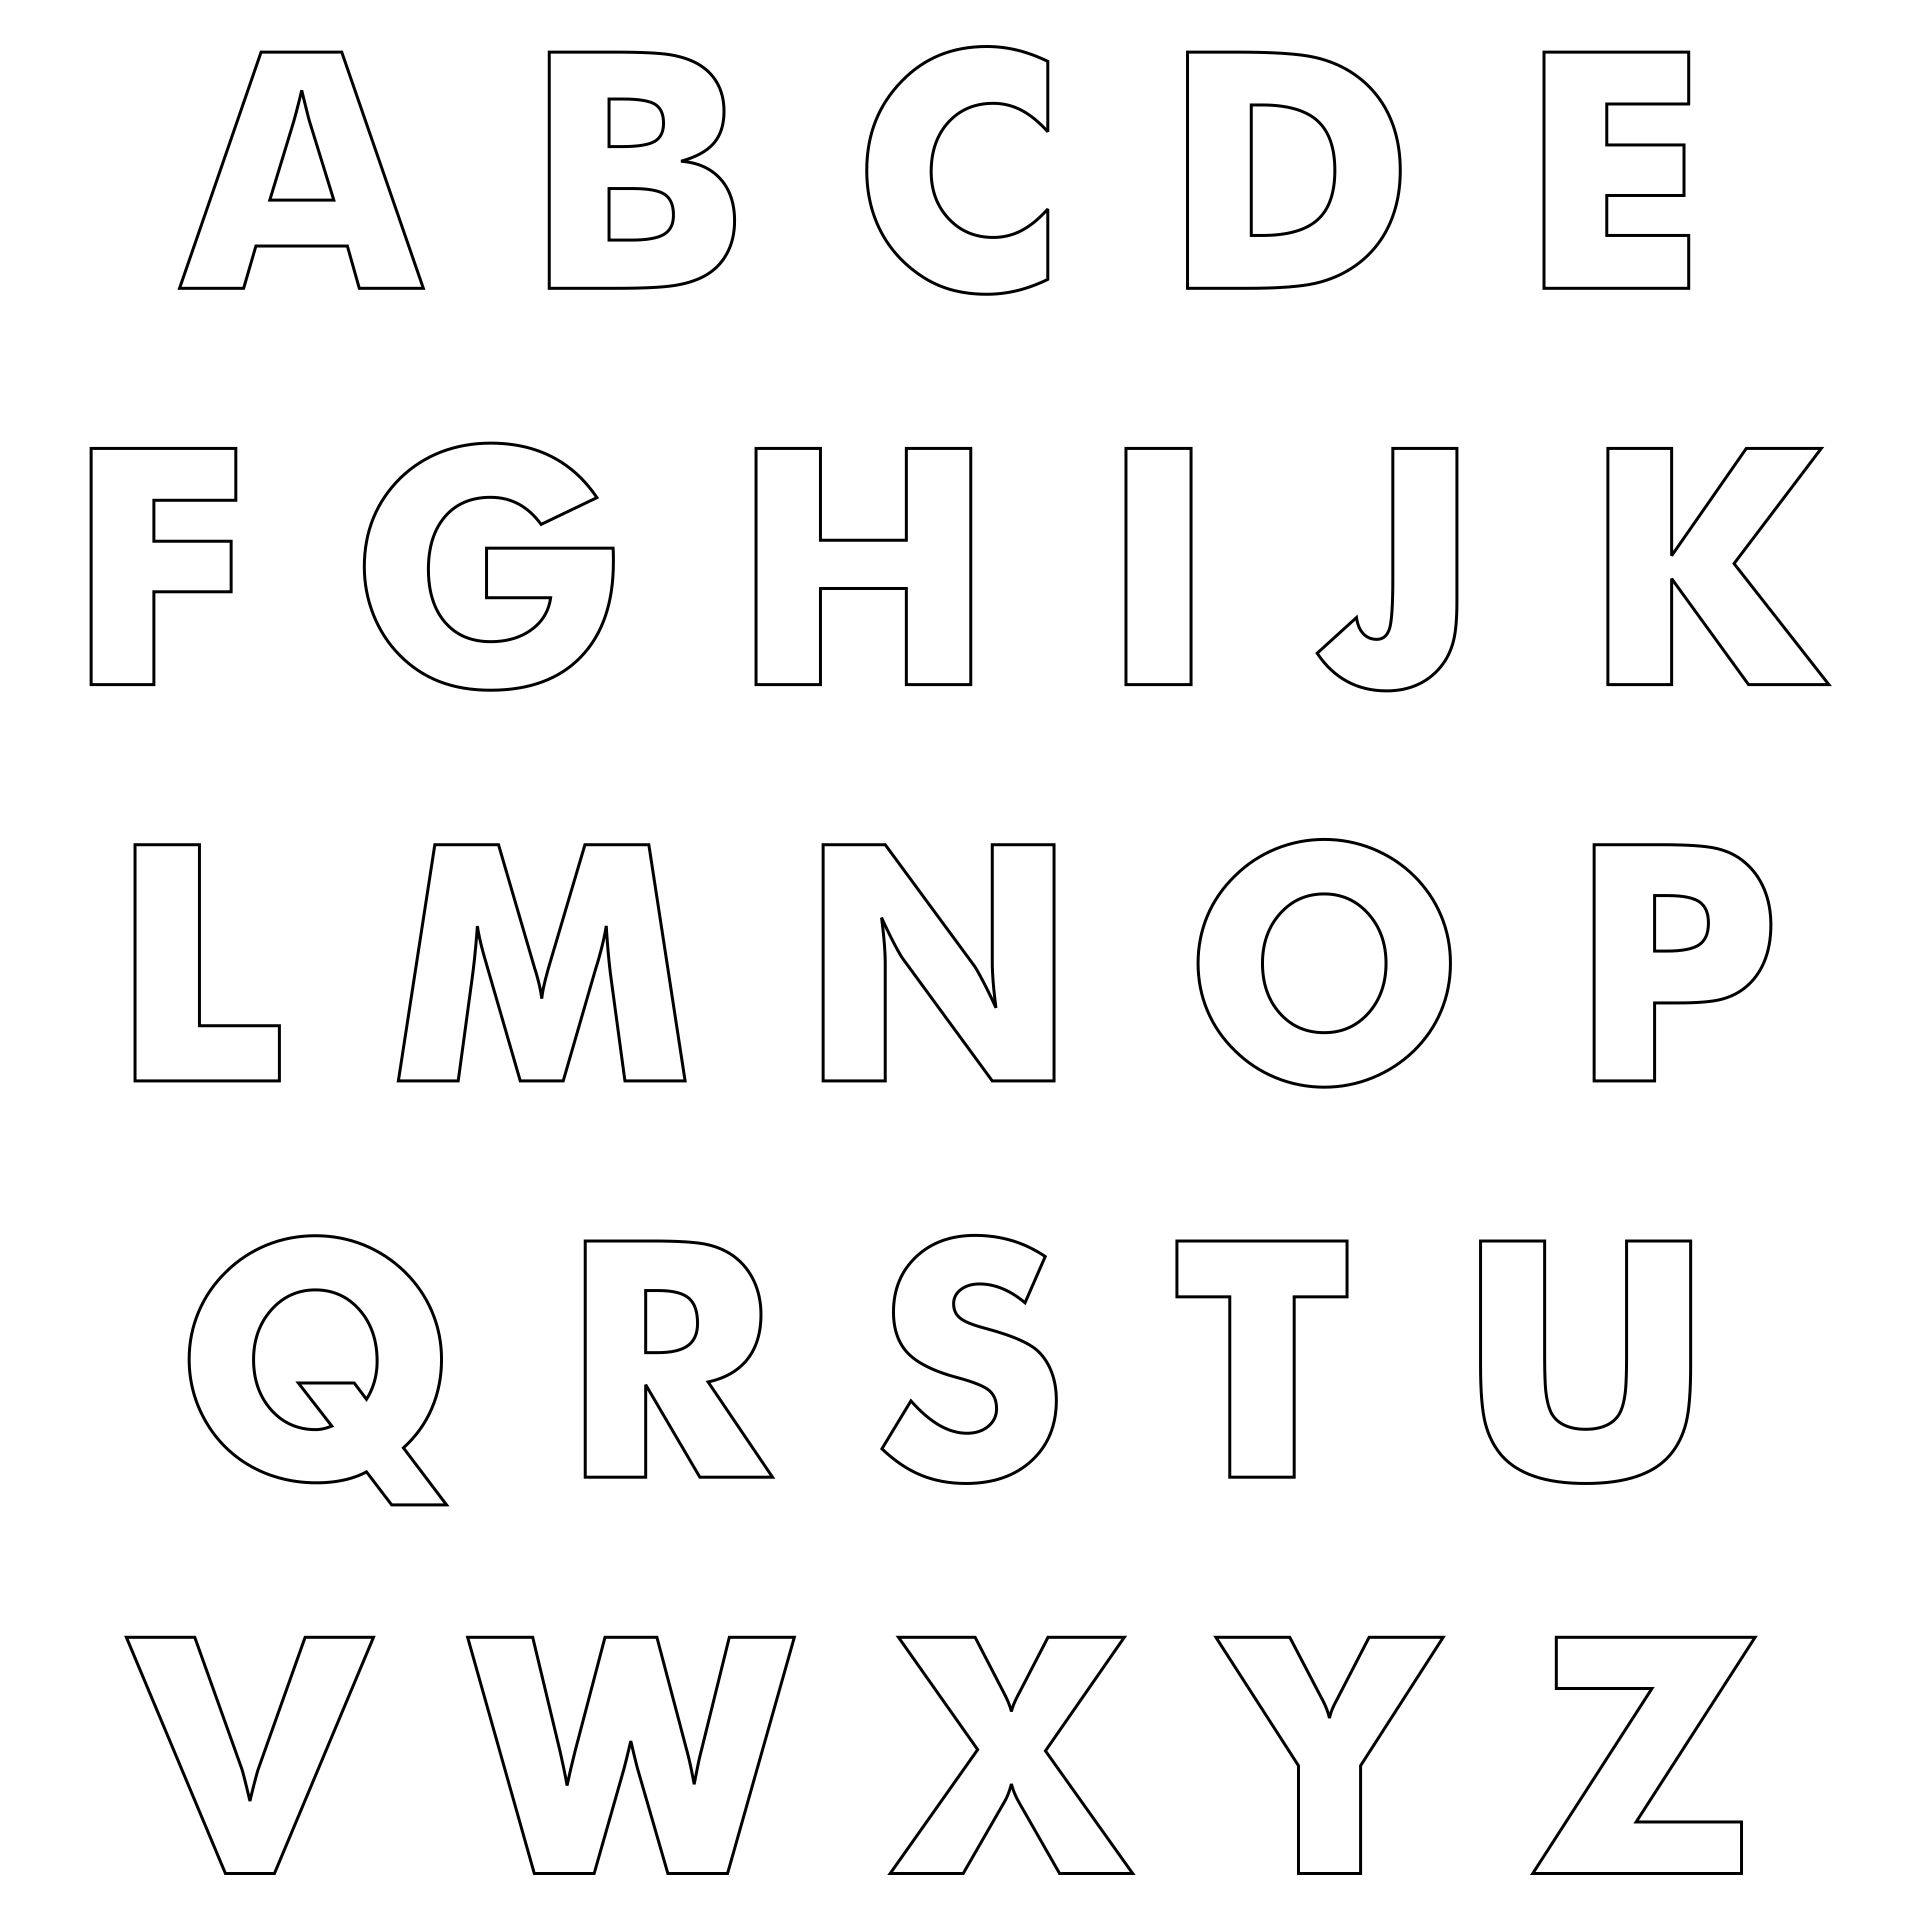 4 inch free stencil patterns, six inch number stencils free printable, small alphabet stencils free printable, on 4 inch free printable alphabet stencil letters template